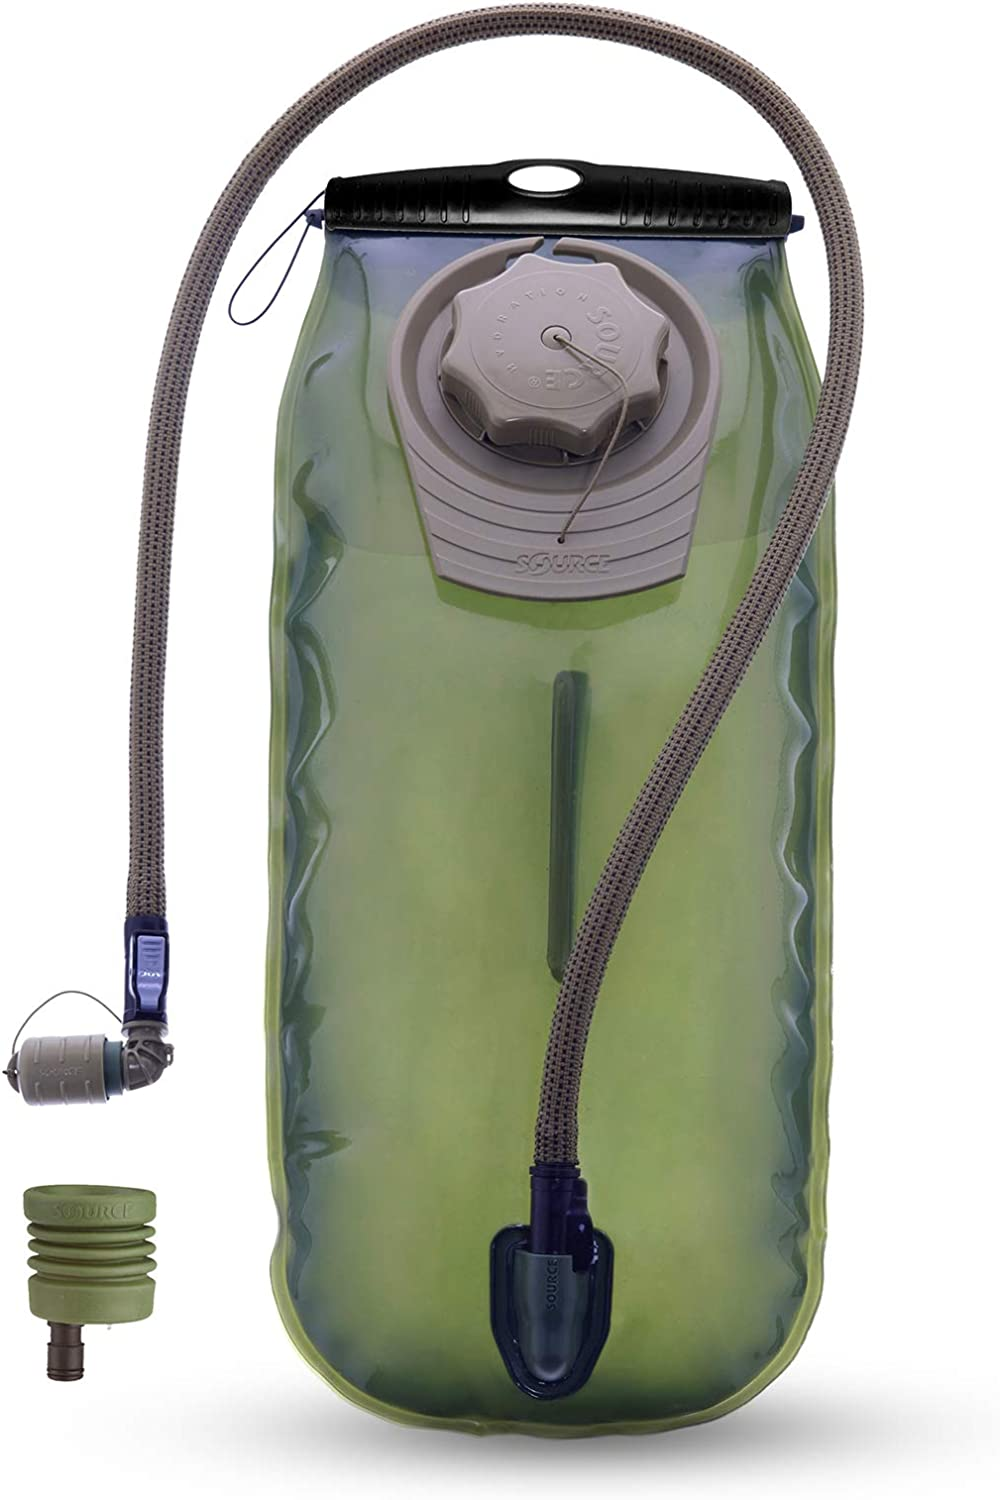 Source Hydration Bladder WXP Upgraded Kit - Kit Includes 3 Liter (100oz) Low Profile Water Bladder and UTA Adaptor for Fast Blader Refill